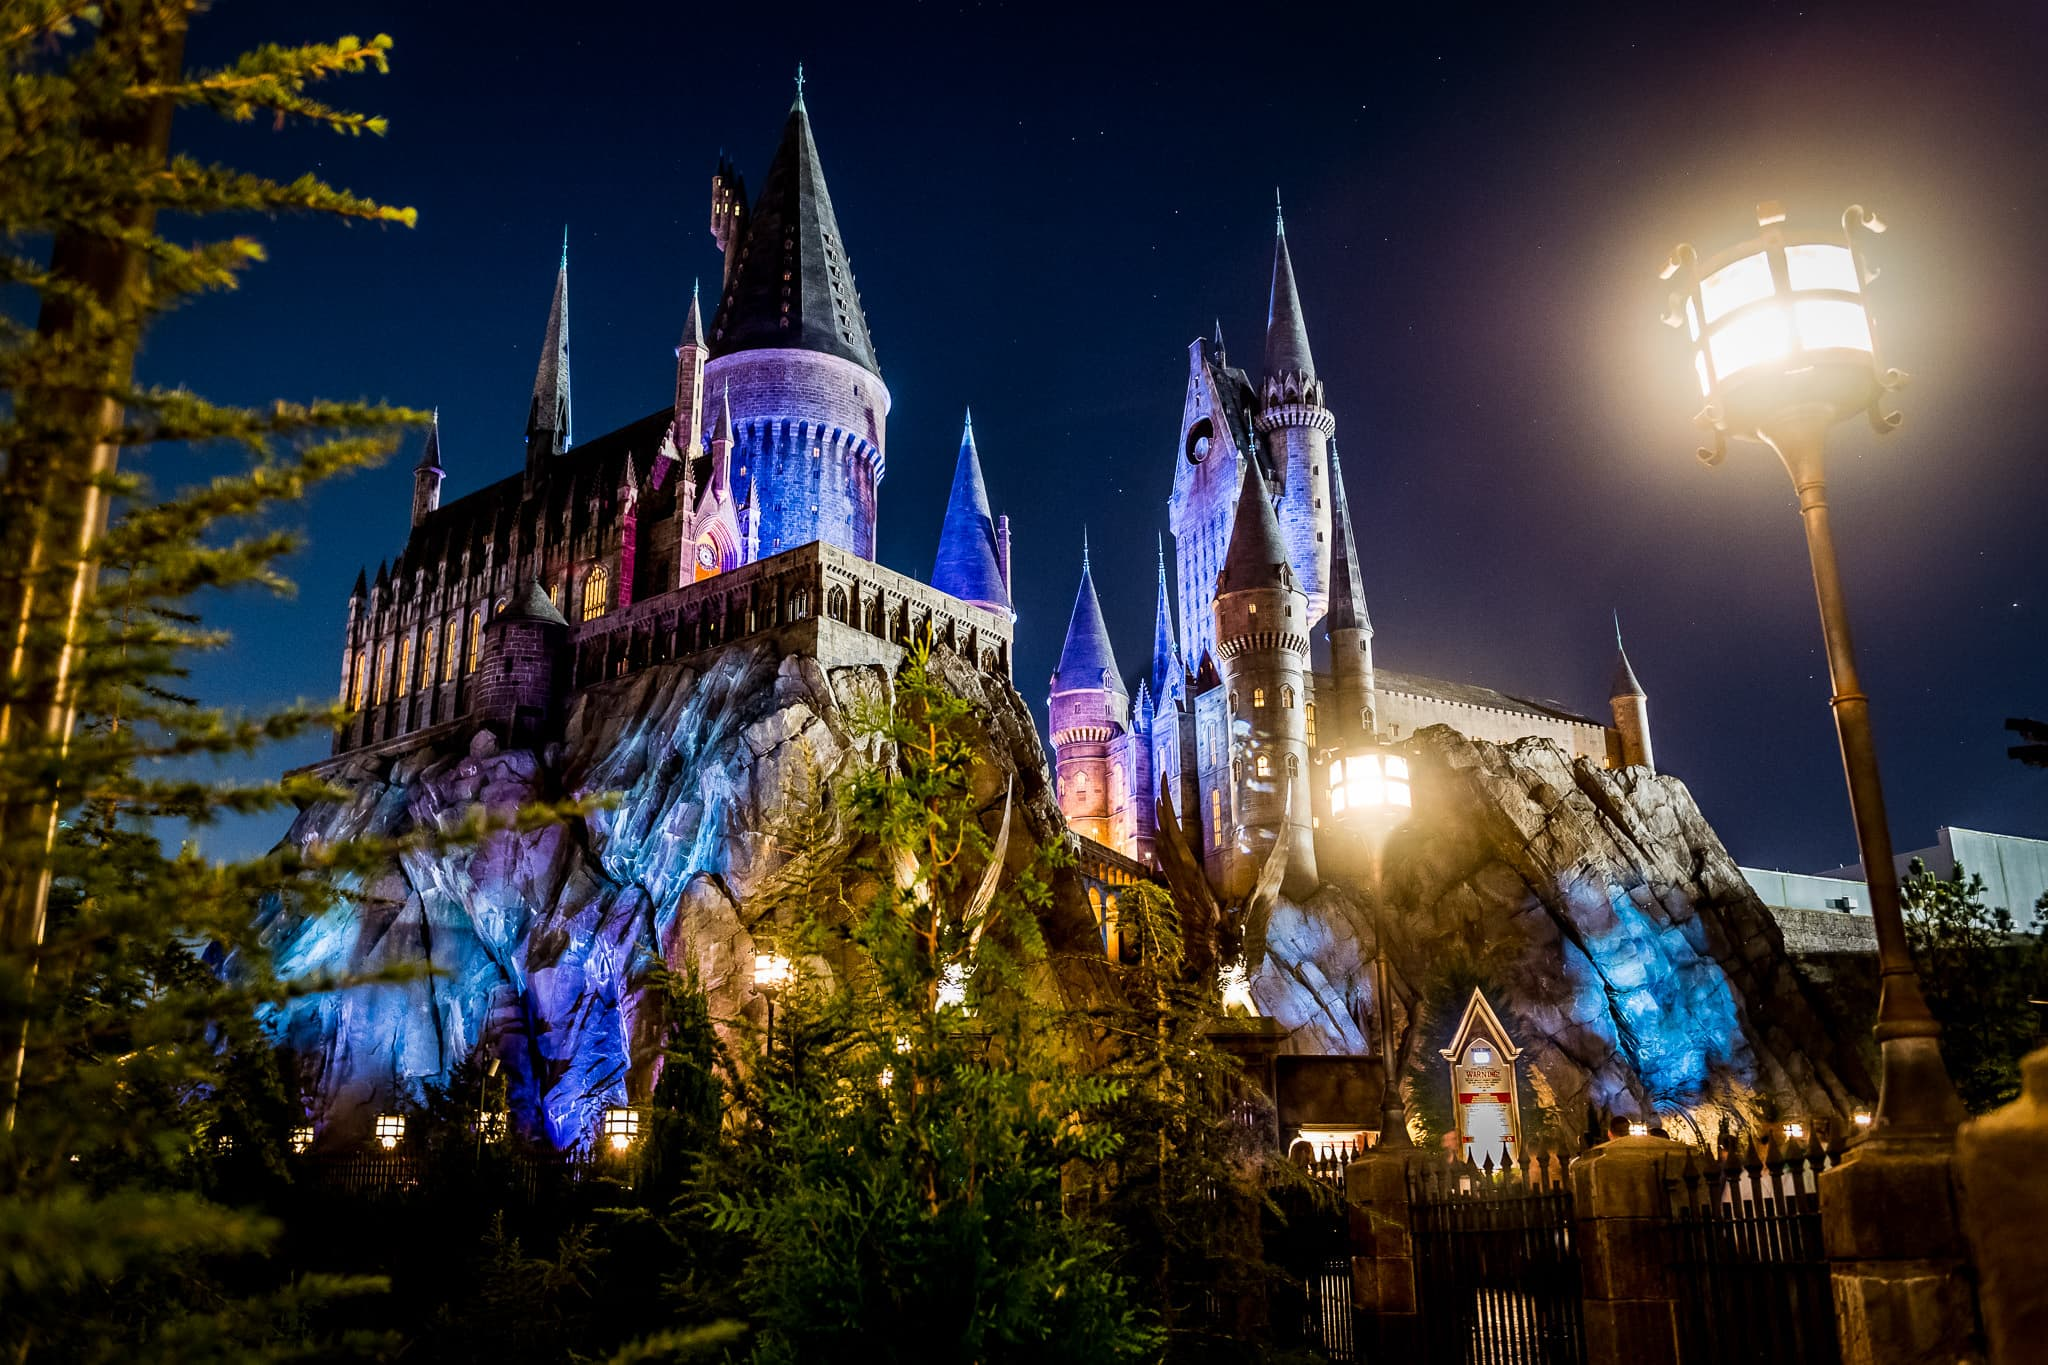 Hogwarts Castle at night during an EY corporate event at The Wizarding World of Harry Potter: Hogsmeade